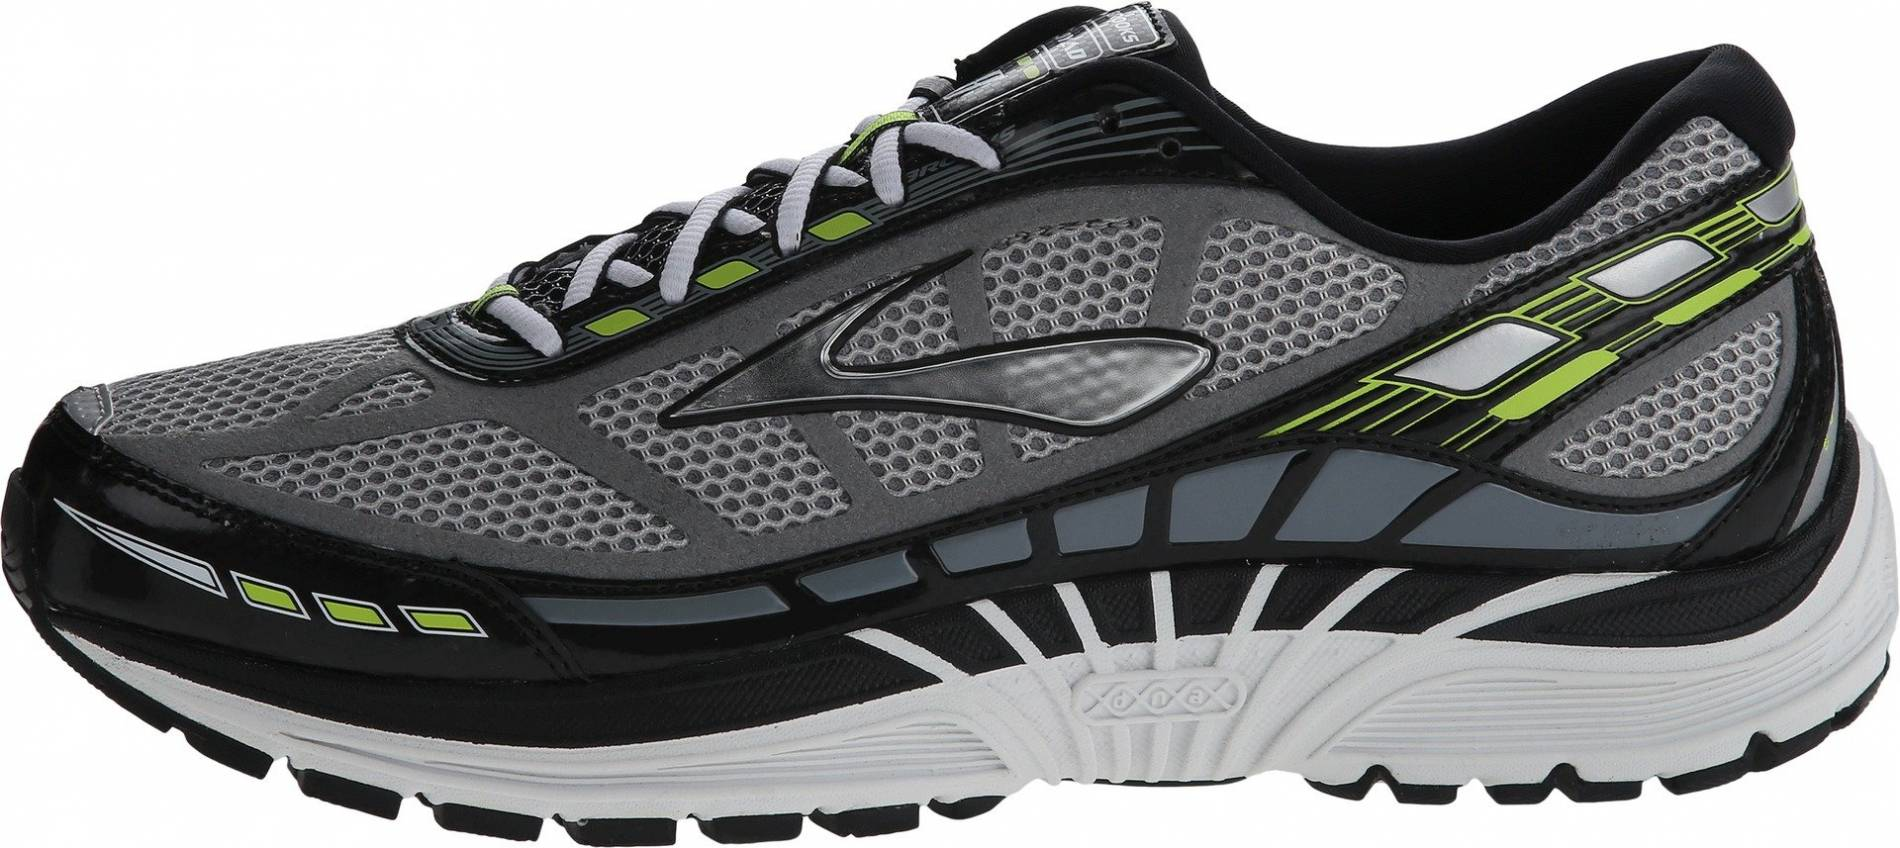 Only £112 + Review of Brooks Dyad 8